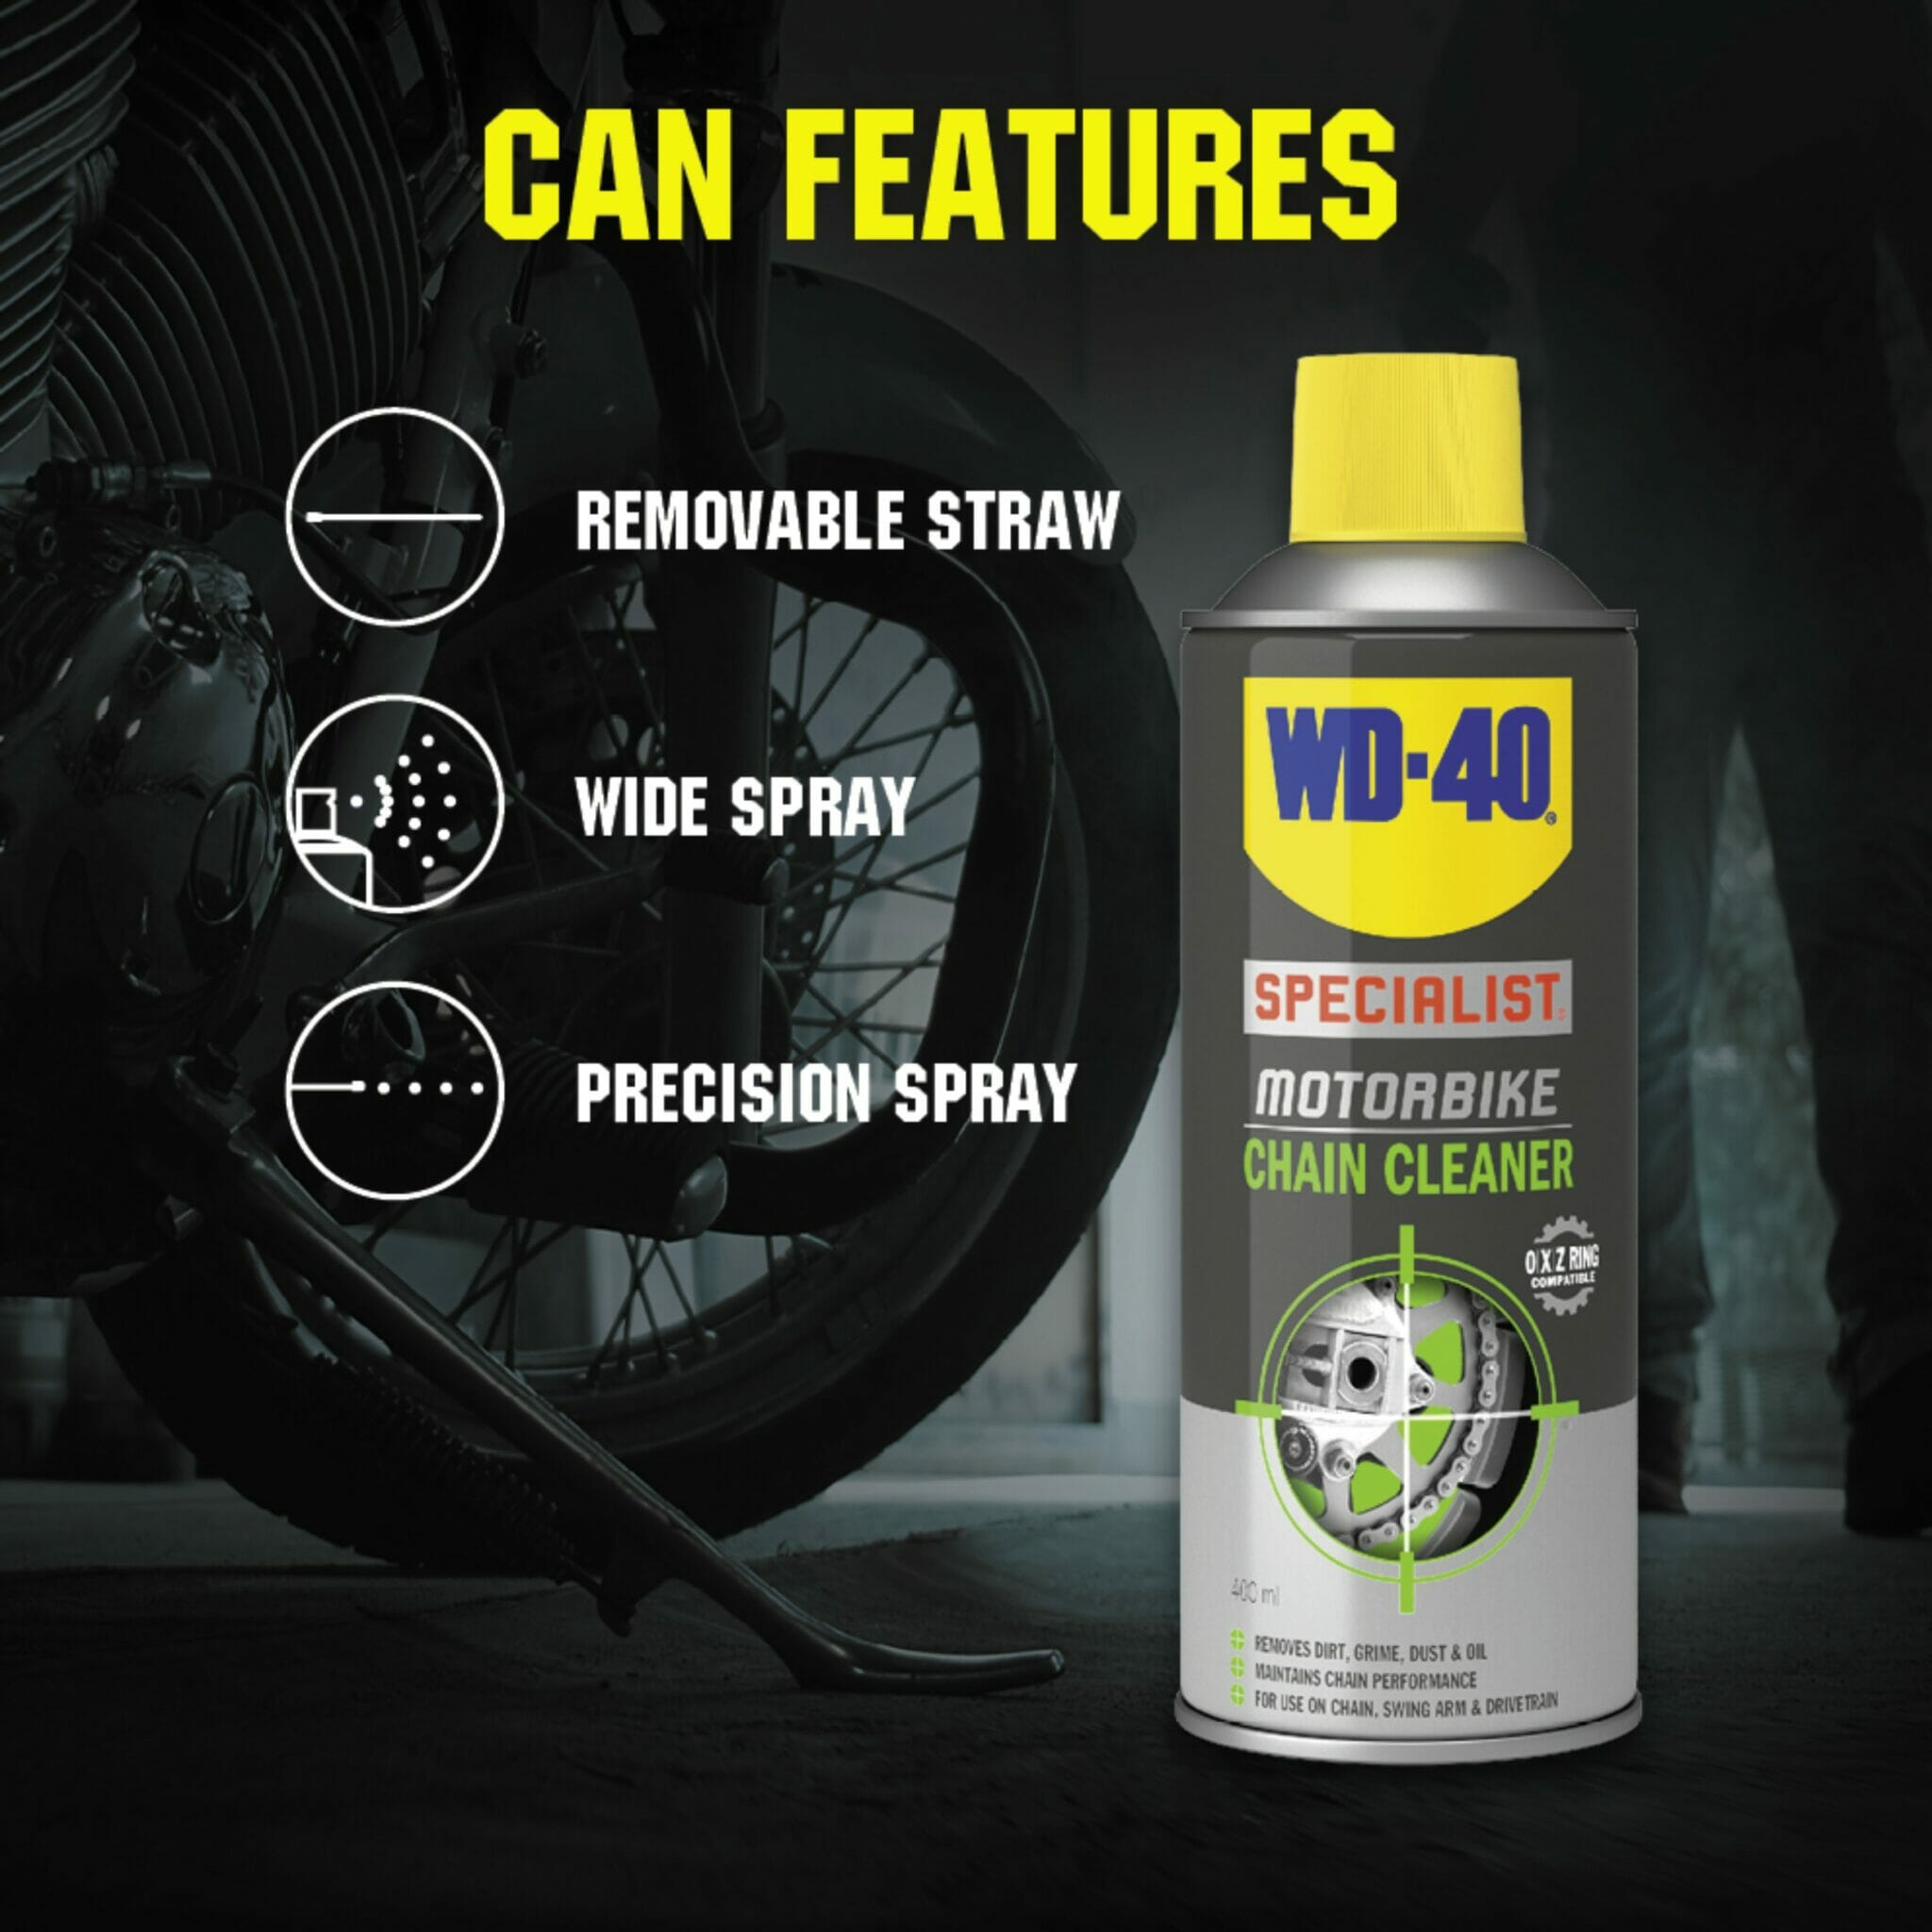 uk wd40 specialist motorbike chain cleaner 400ml can features lifestyle background